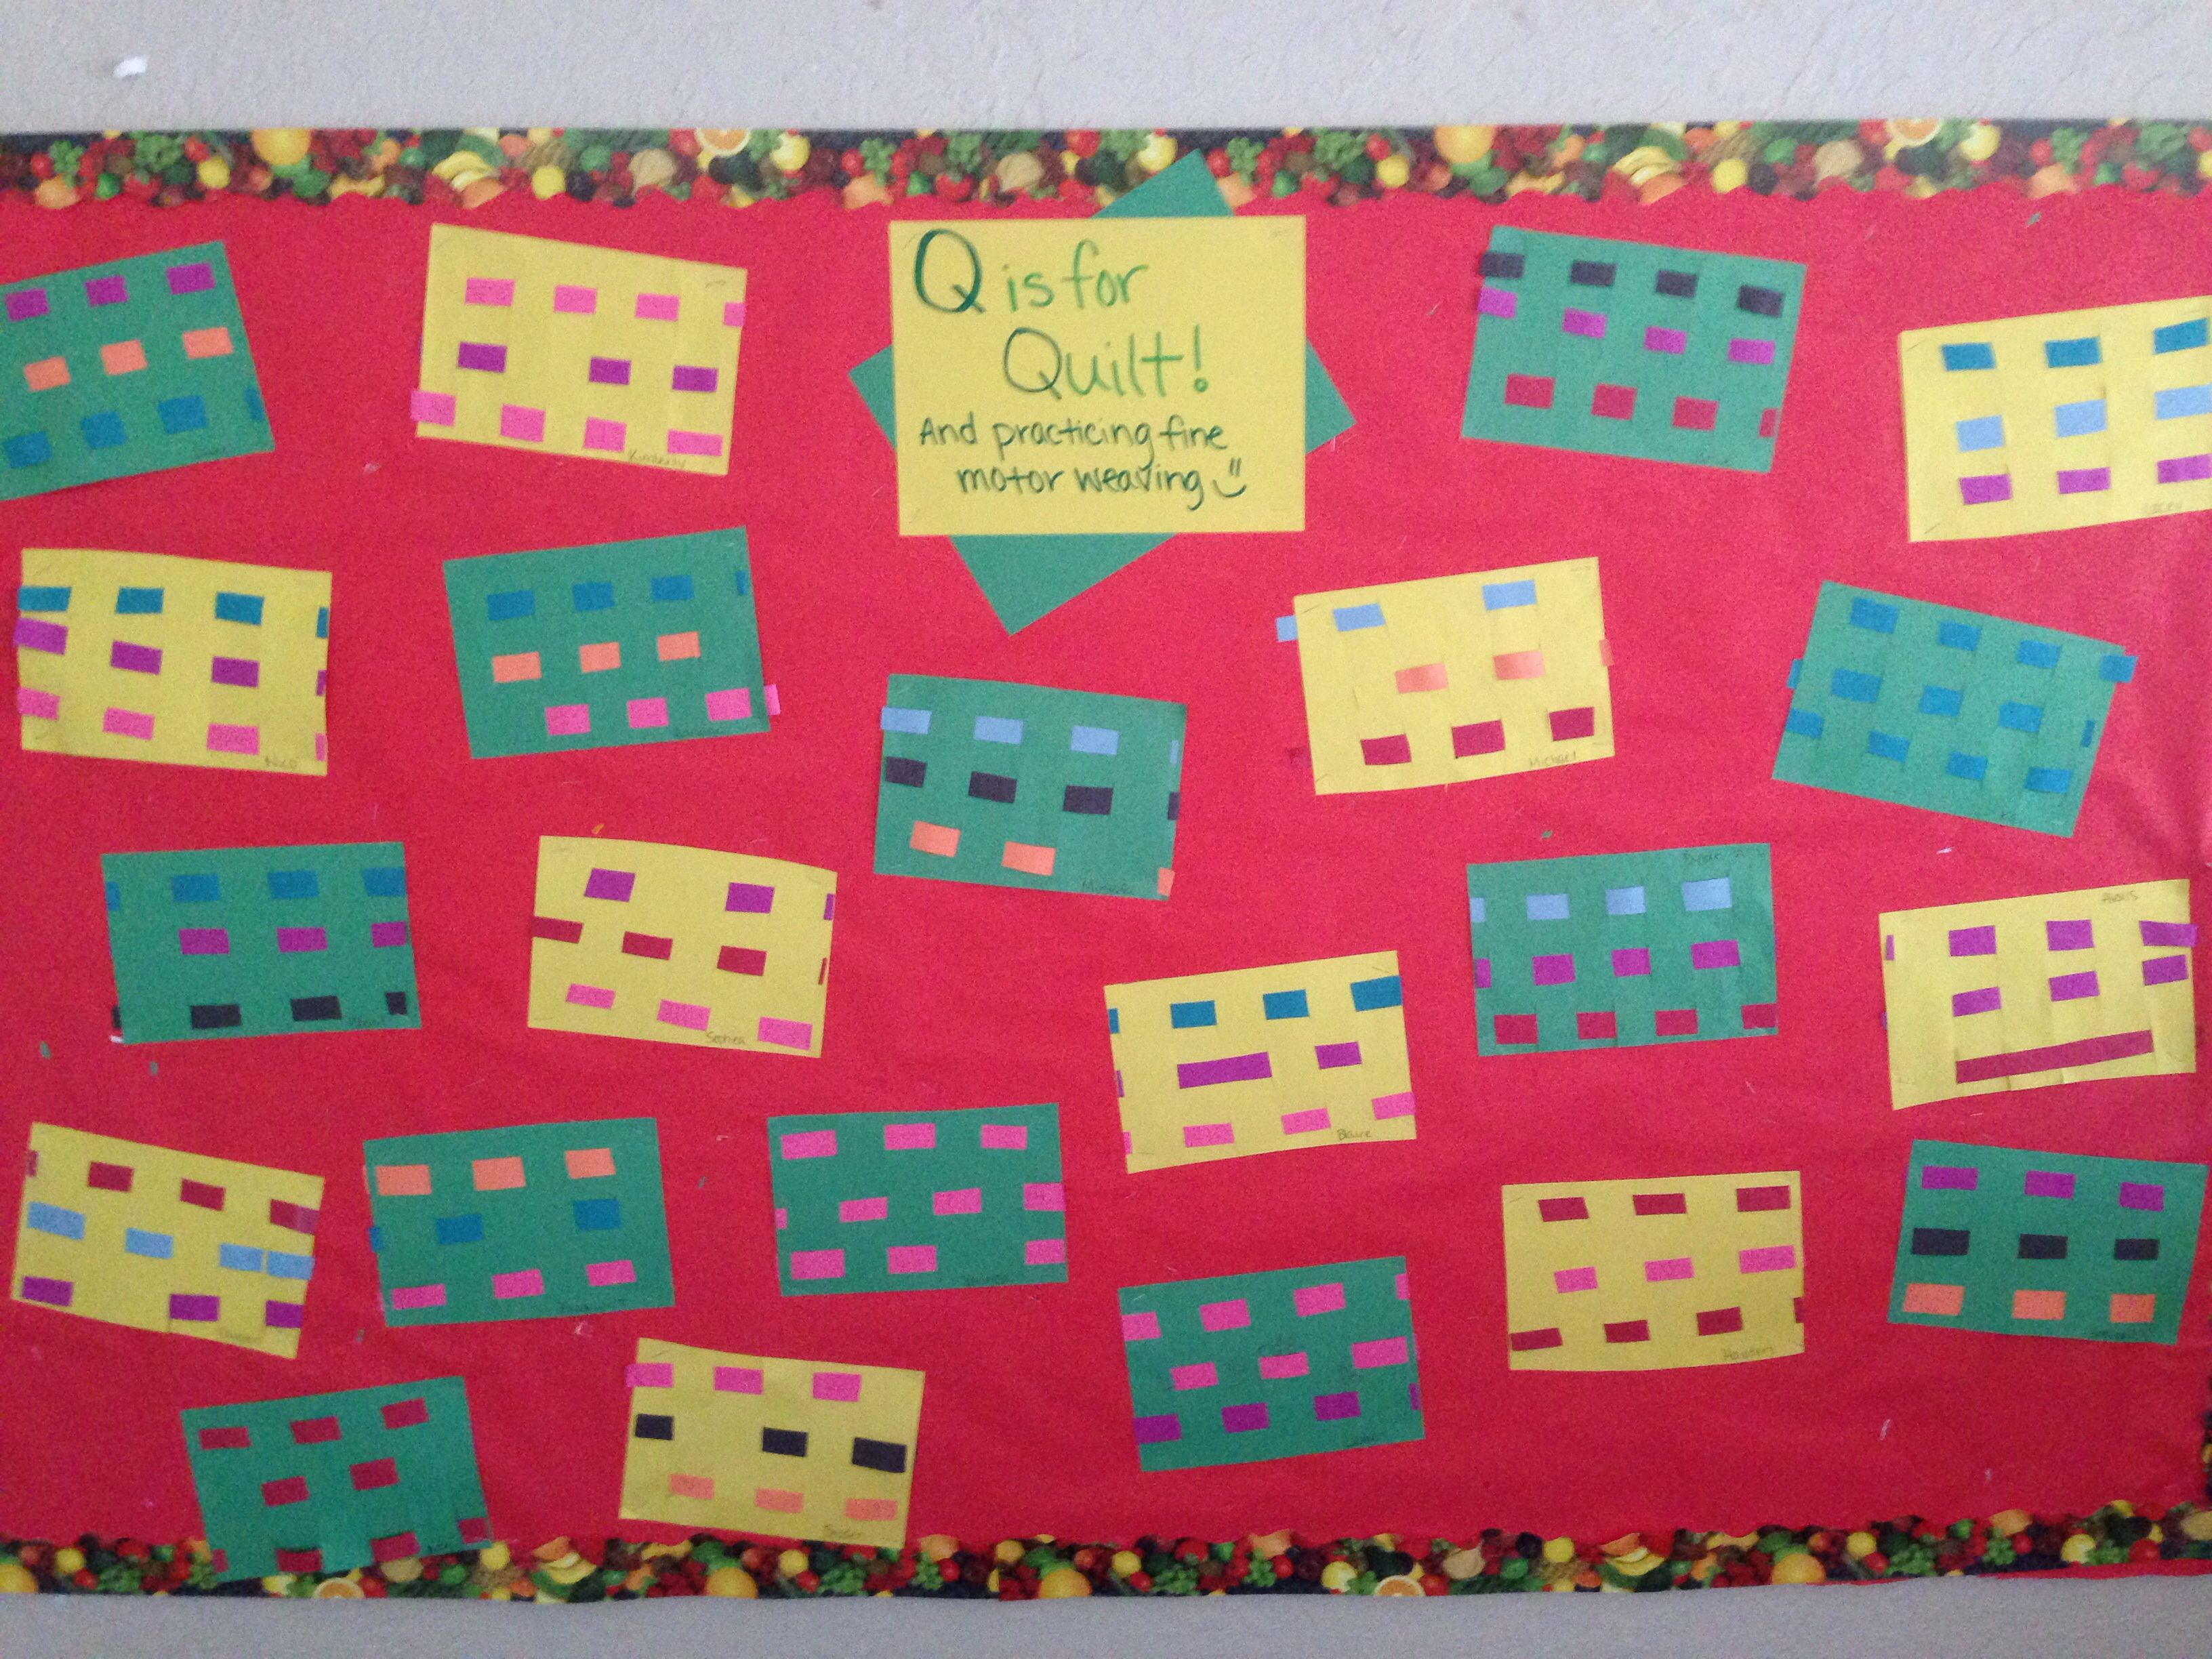 Practicing fine motor movement with weaving while also learning Q for Quilt!